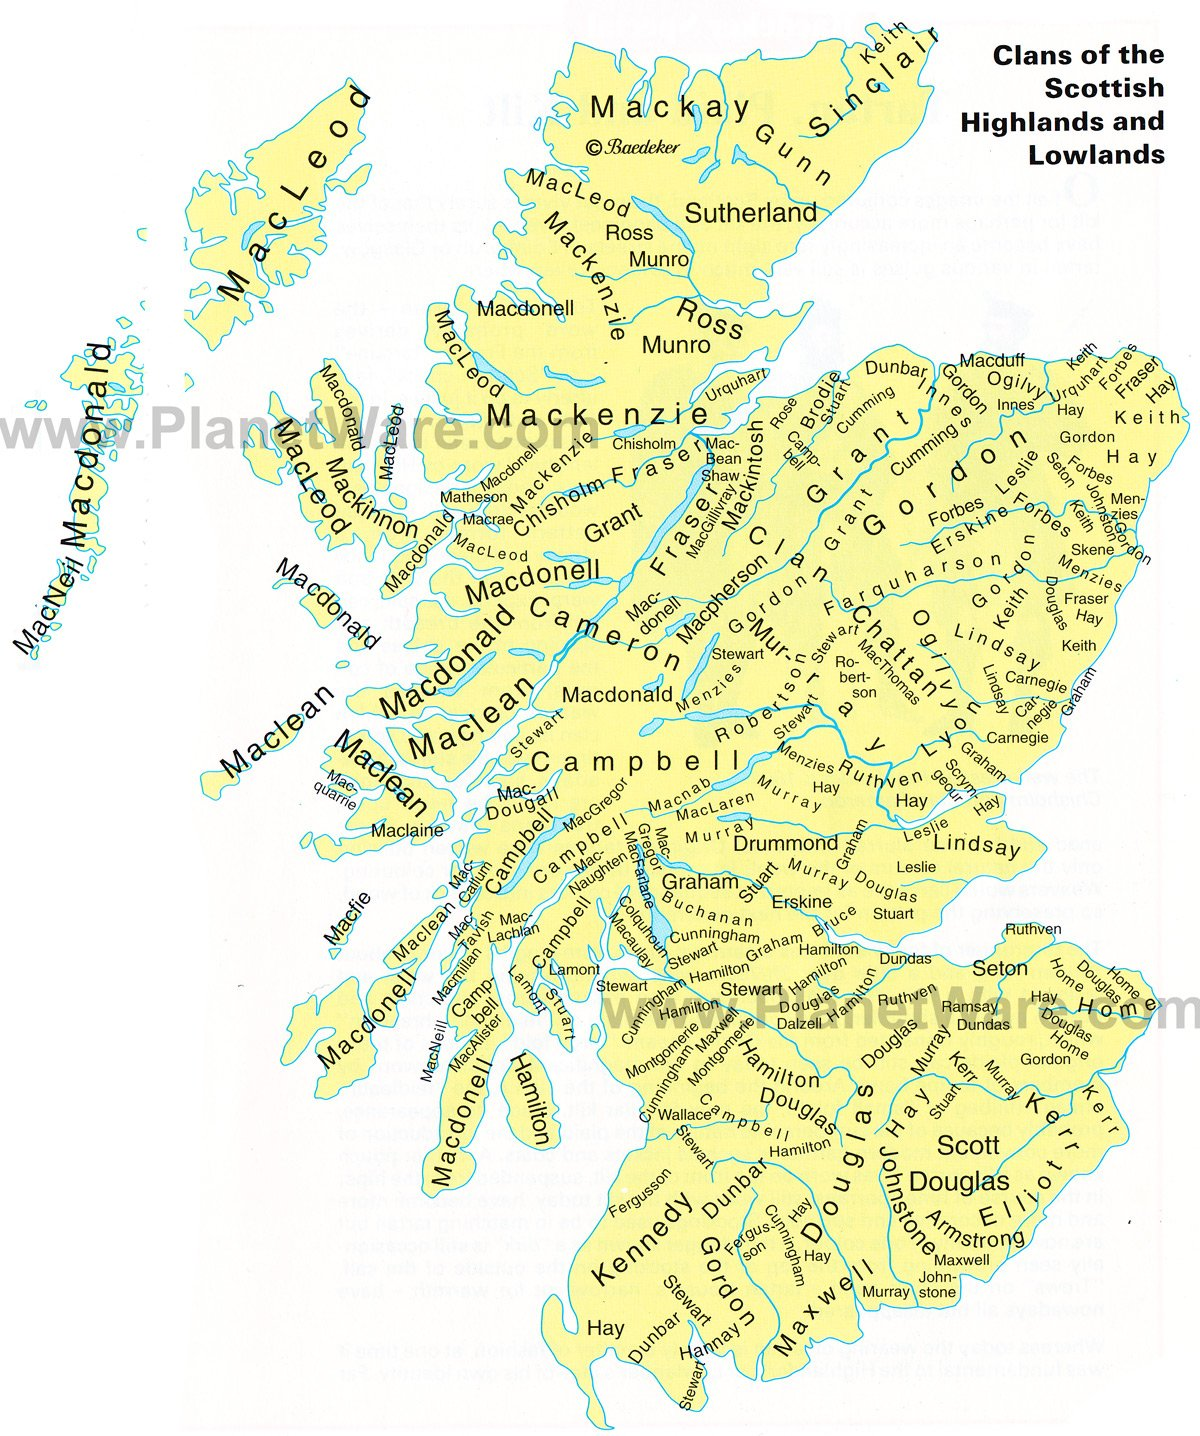 Map Of Scottish Highlands Map of Clans of the Scottish Highlands and Lowlands | PlanetWare